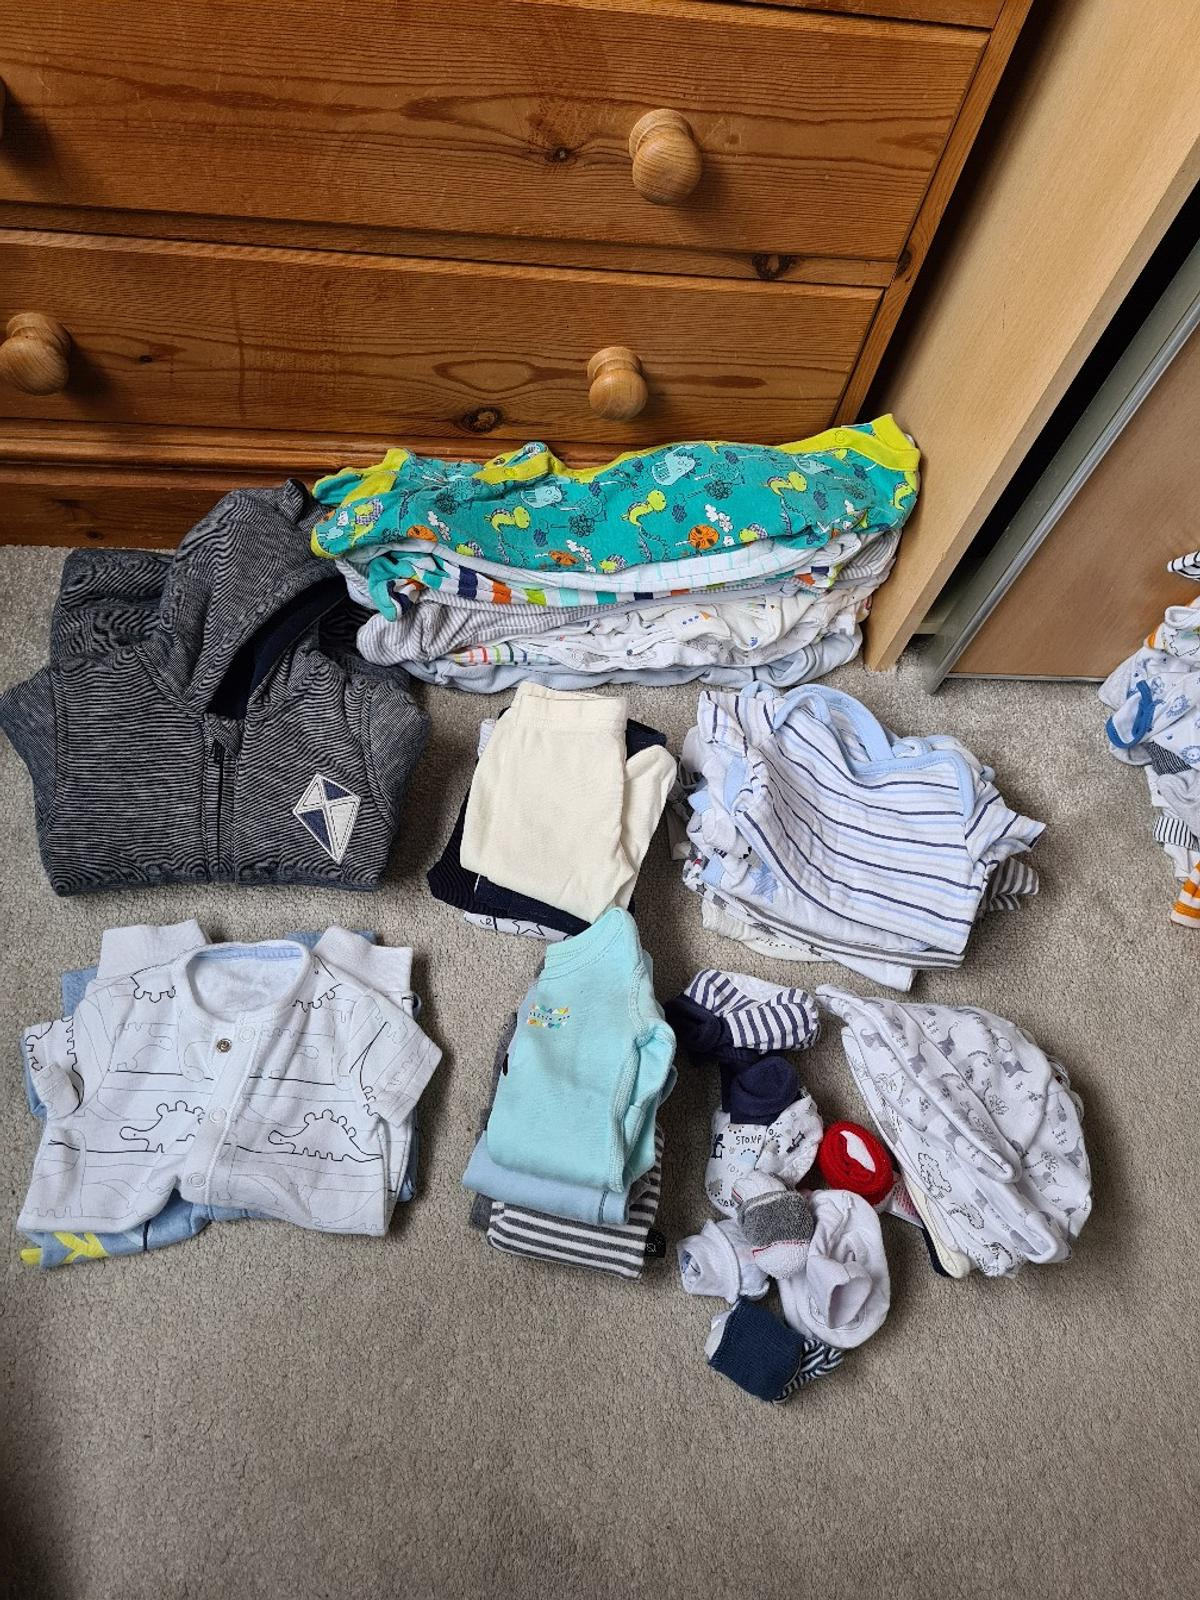 10x sleepsuits 8x tshirt vests 1x pramsuit 5x trousers 4x long sleeved tops 2x short sleeve/leg body suits Mixture of hats/mittens/booties  Collection only from Crowland